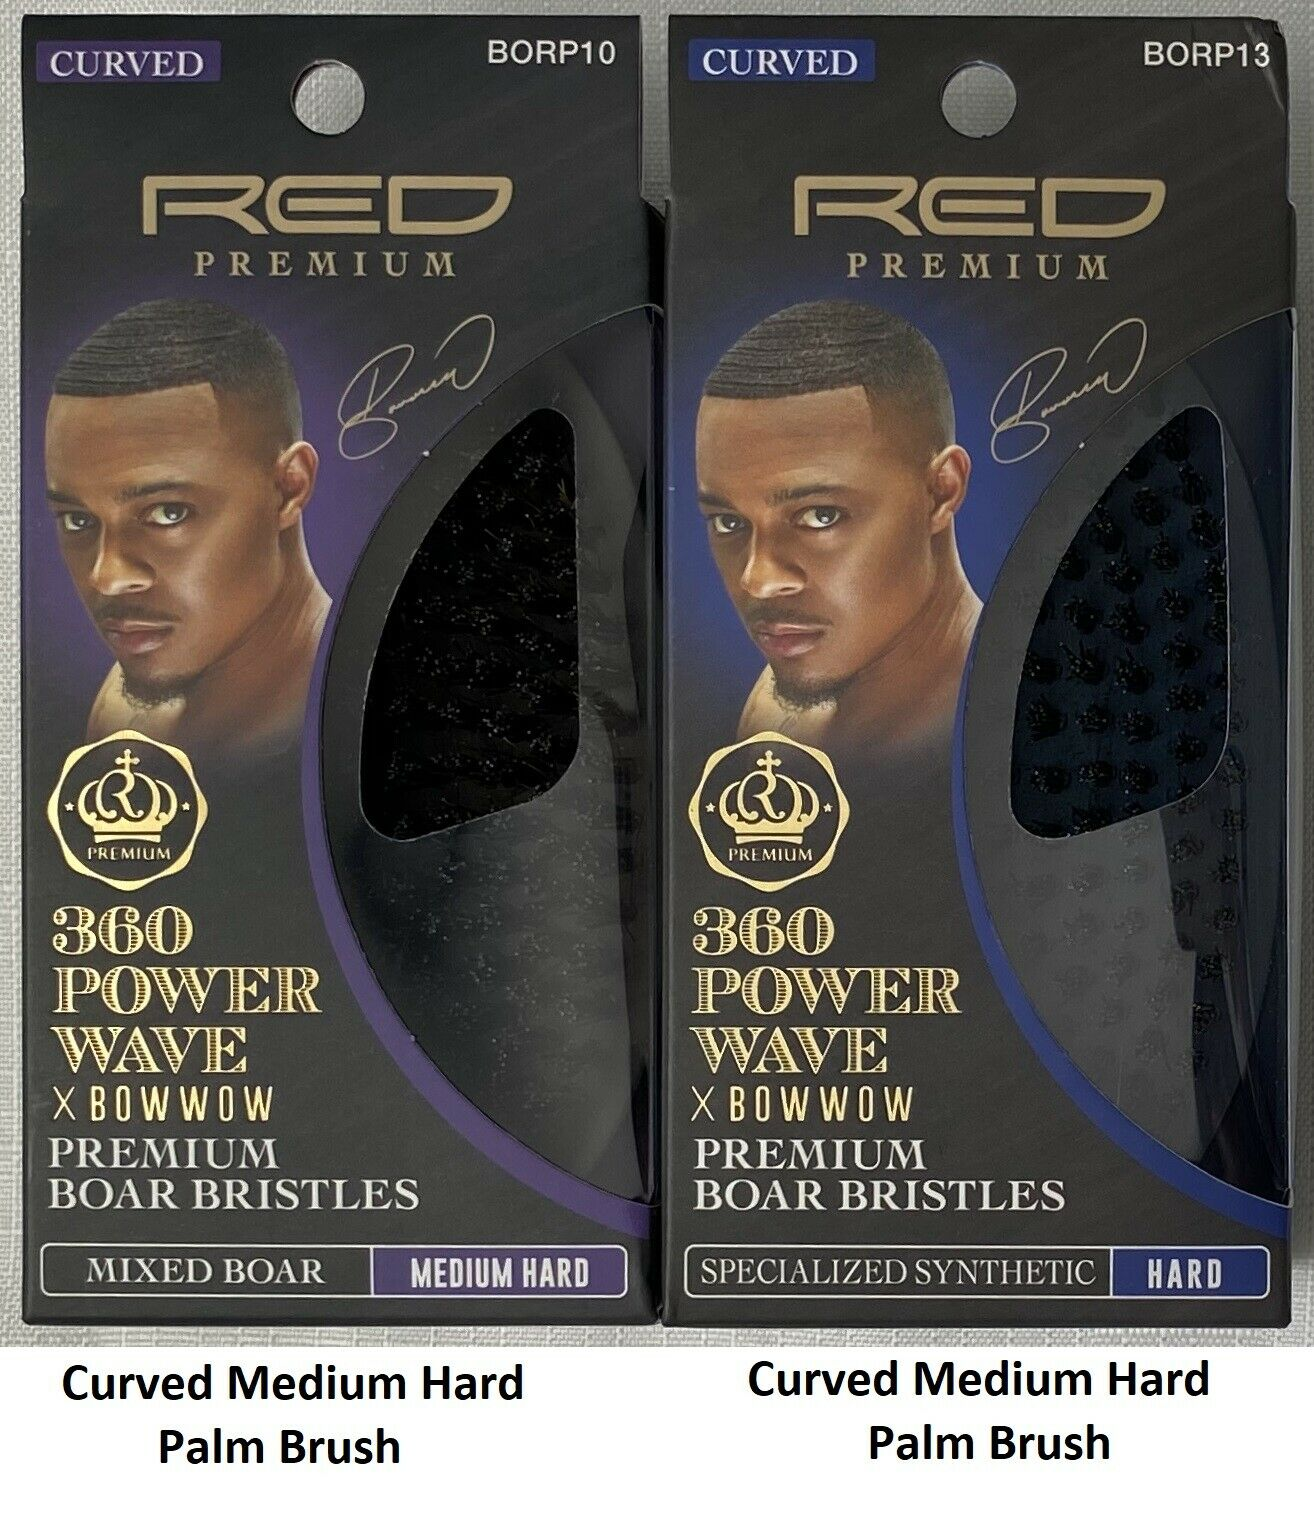 red 360 power wave x bow wow